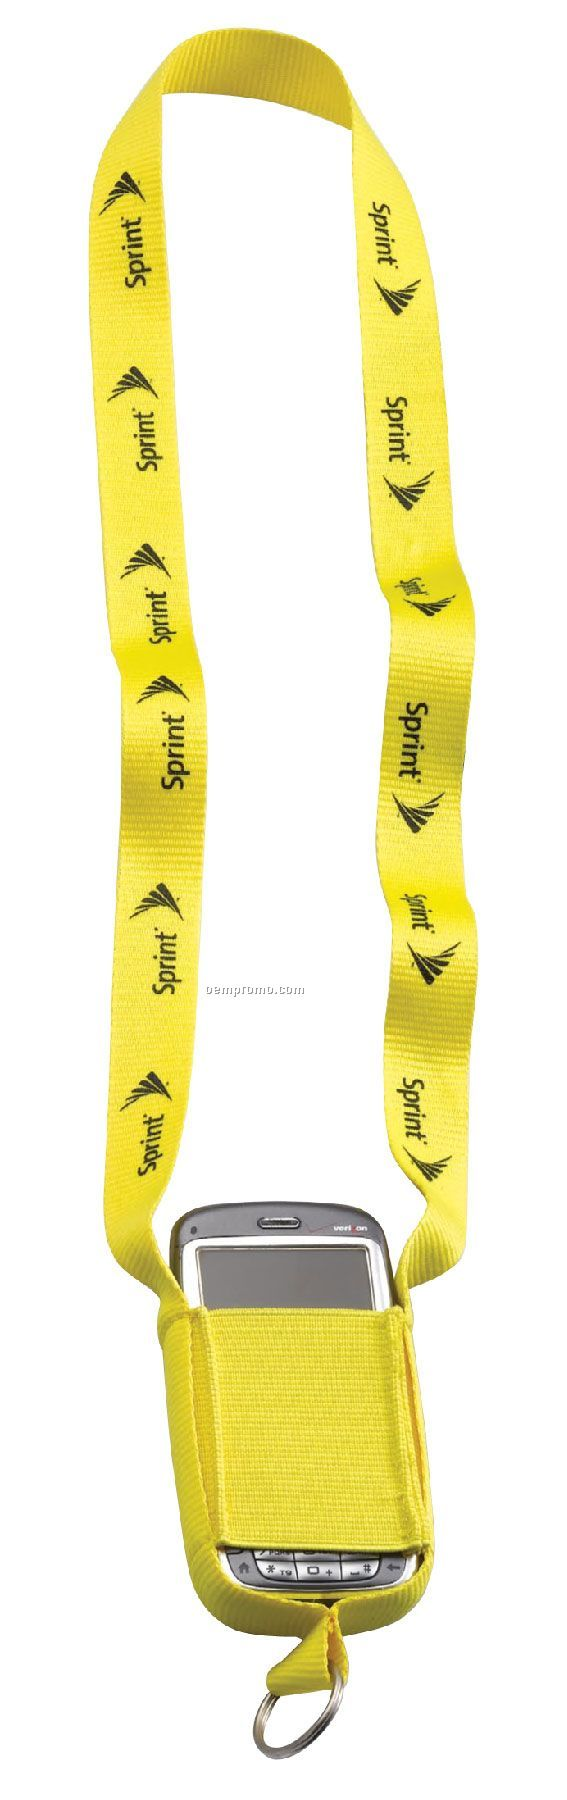 "3/4"" Polyester Cell Phone Lanyard With Metal Split Ring"